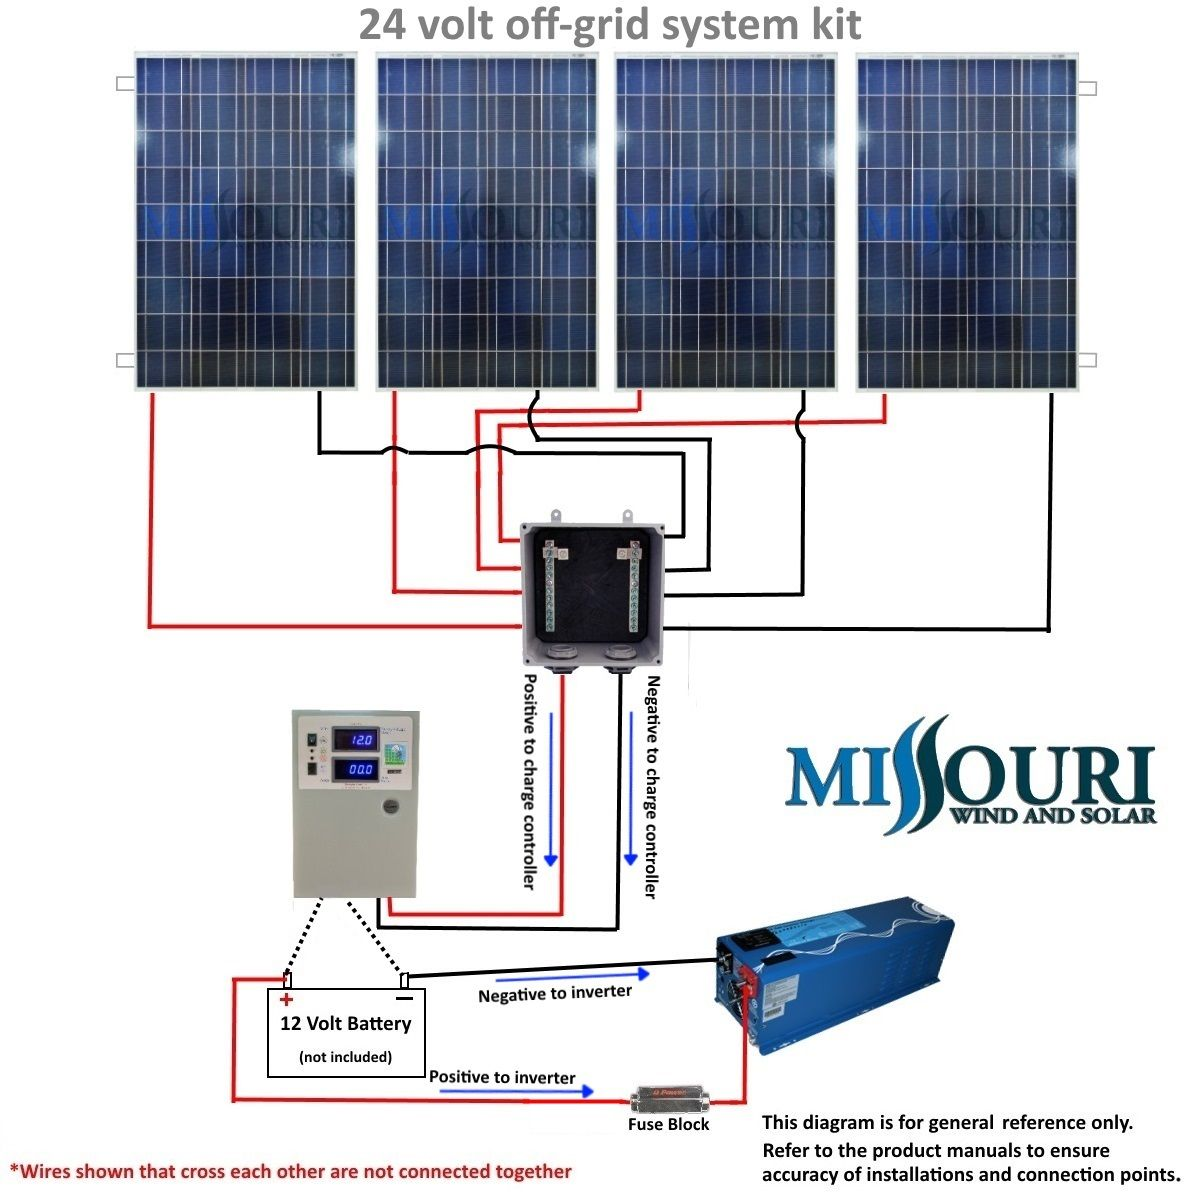 600 Watt Solar Panel Wiring Diagram Library Power System 1000 24 Volt Off Grid Kit Techno Pinterest Inverter